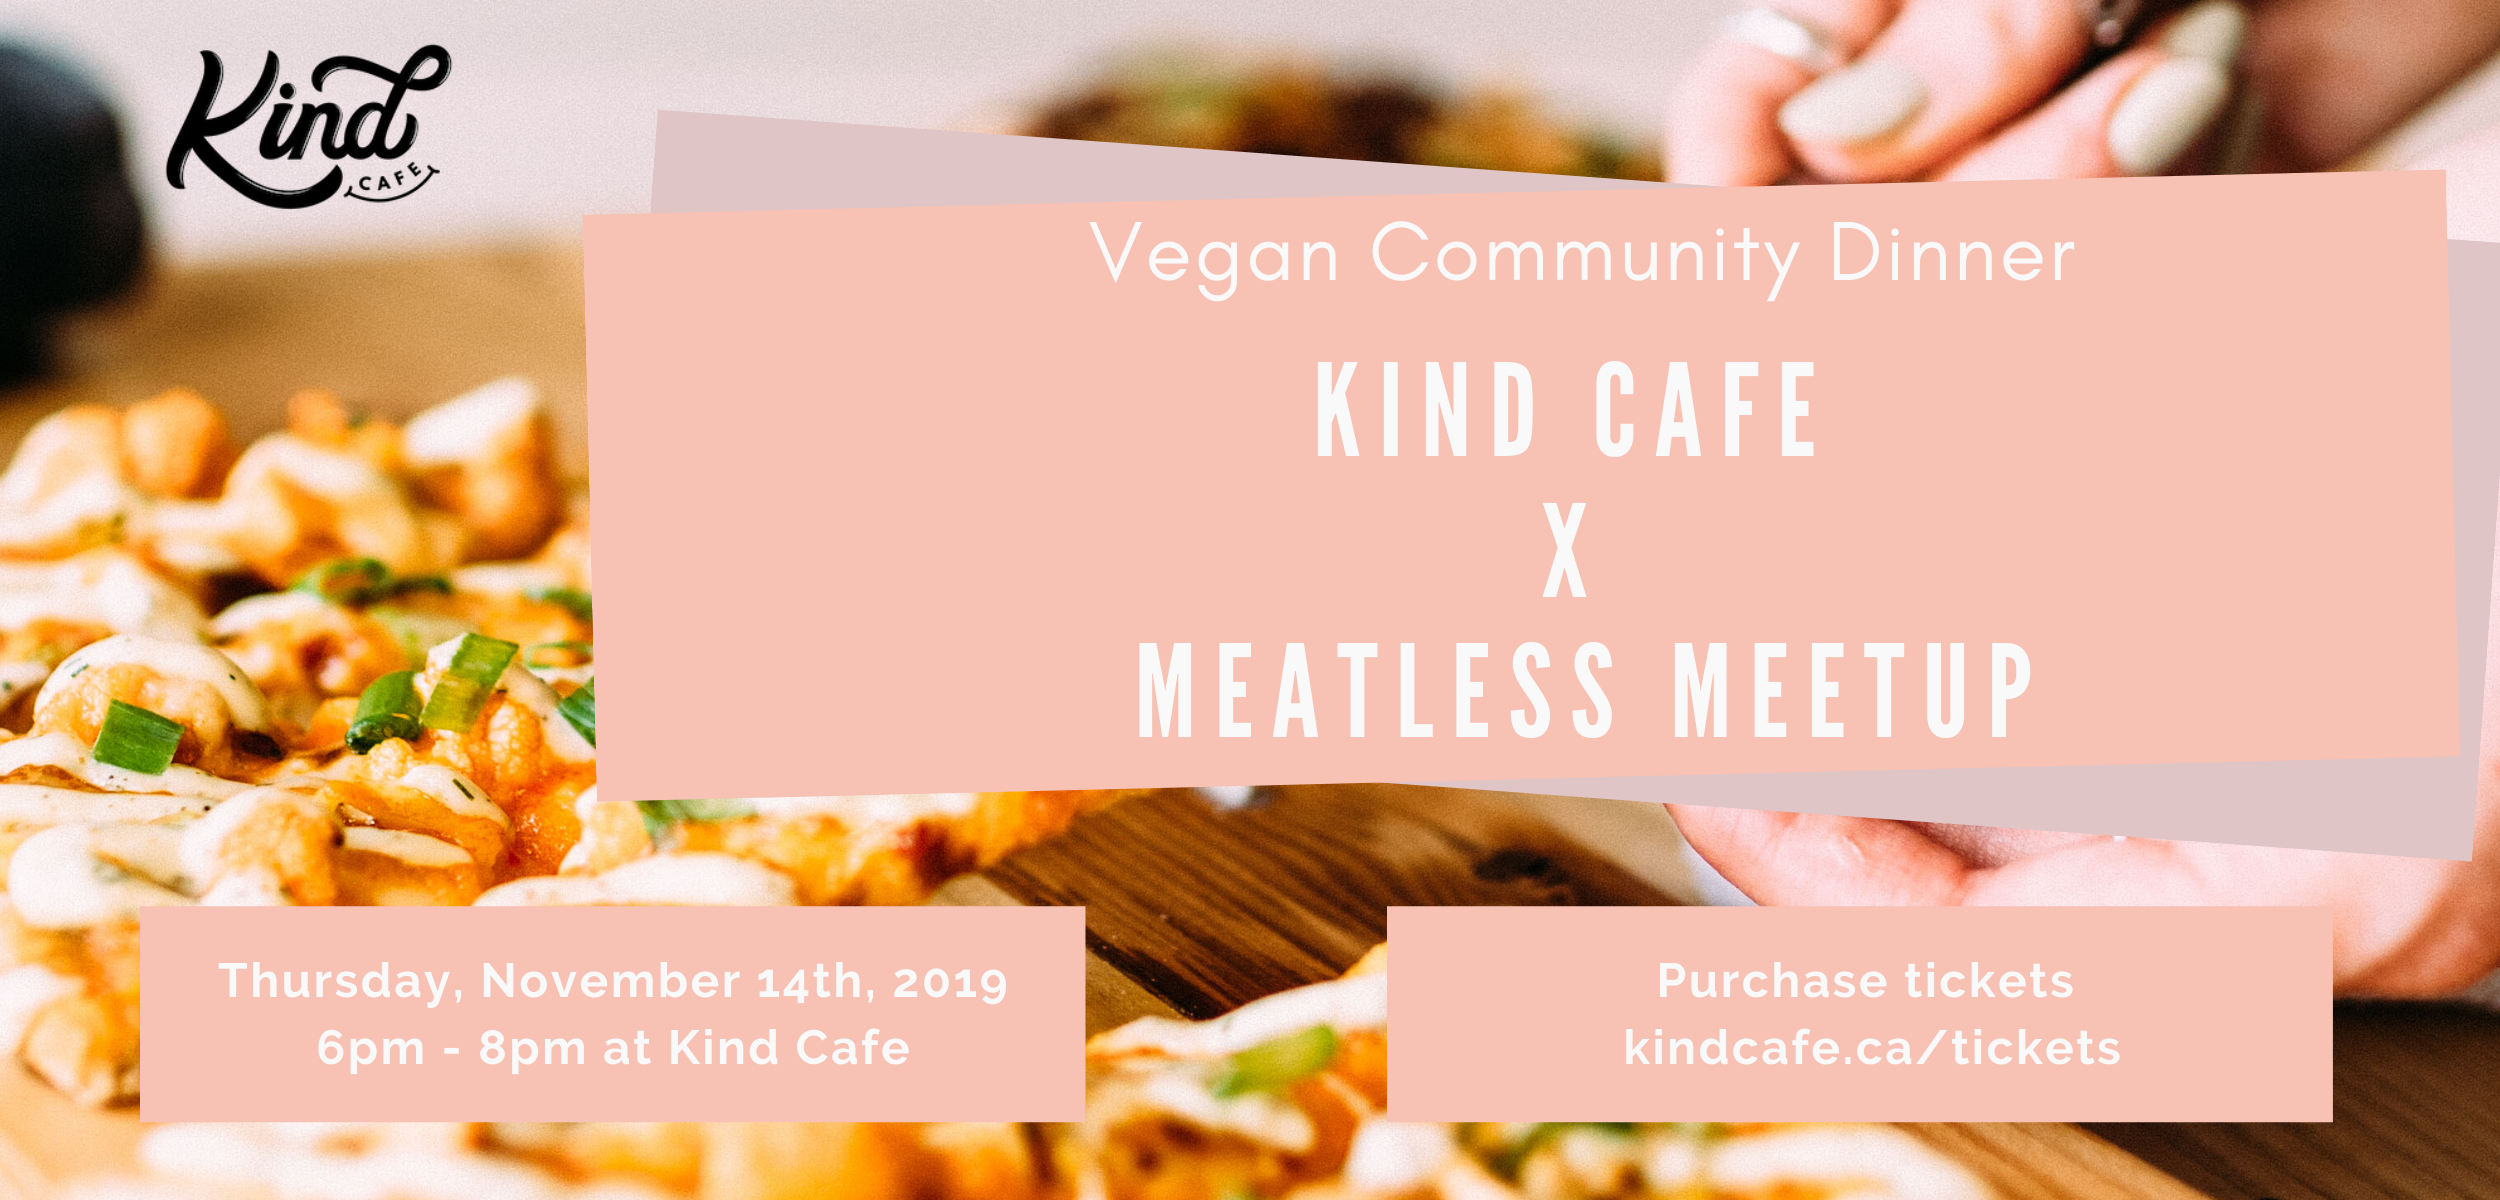 Meatless Meetup x Kind Cafe.png